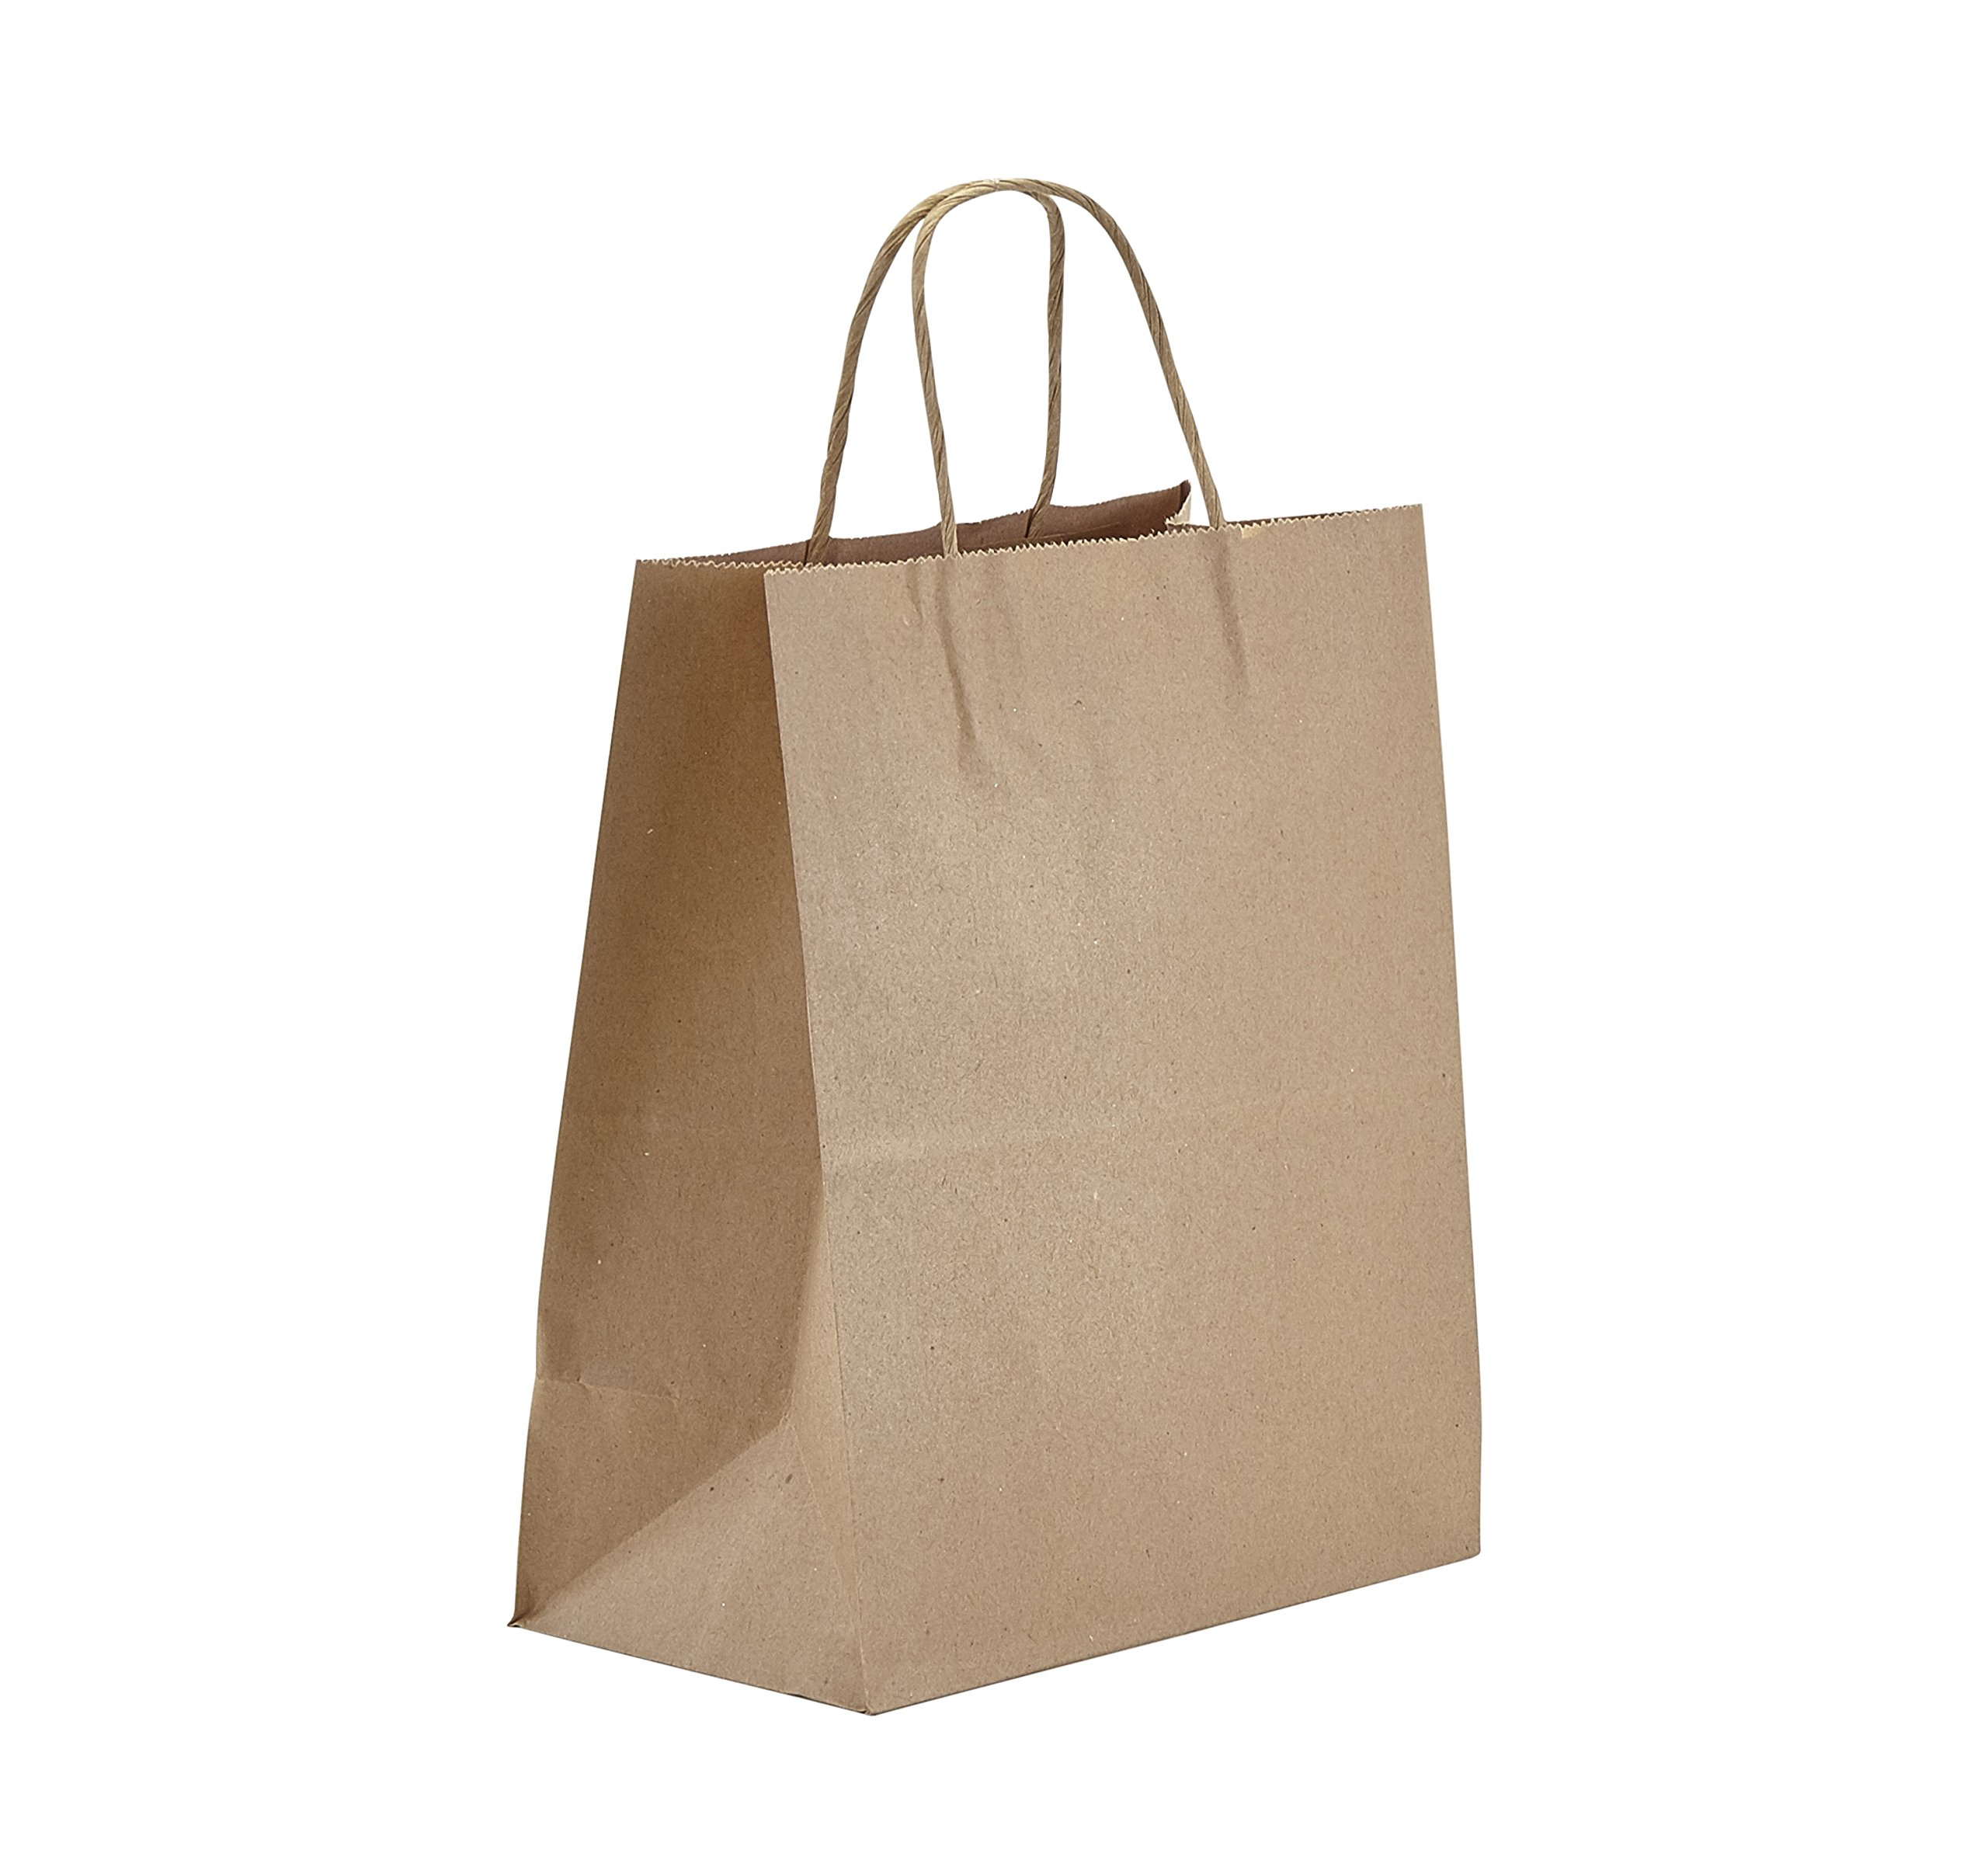 PTP - 8'' x 4.75'' x 10.5'' Natural Kraft Paper Gift Tote Bags - 250 Count| Perfect for Birthdays, Weddings, Holidays and All Occassions | White or Natural Colors | Multiple Sizes